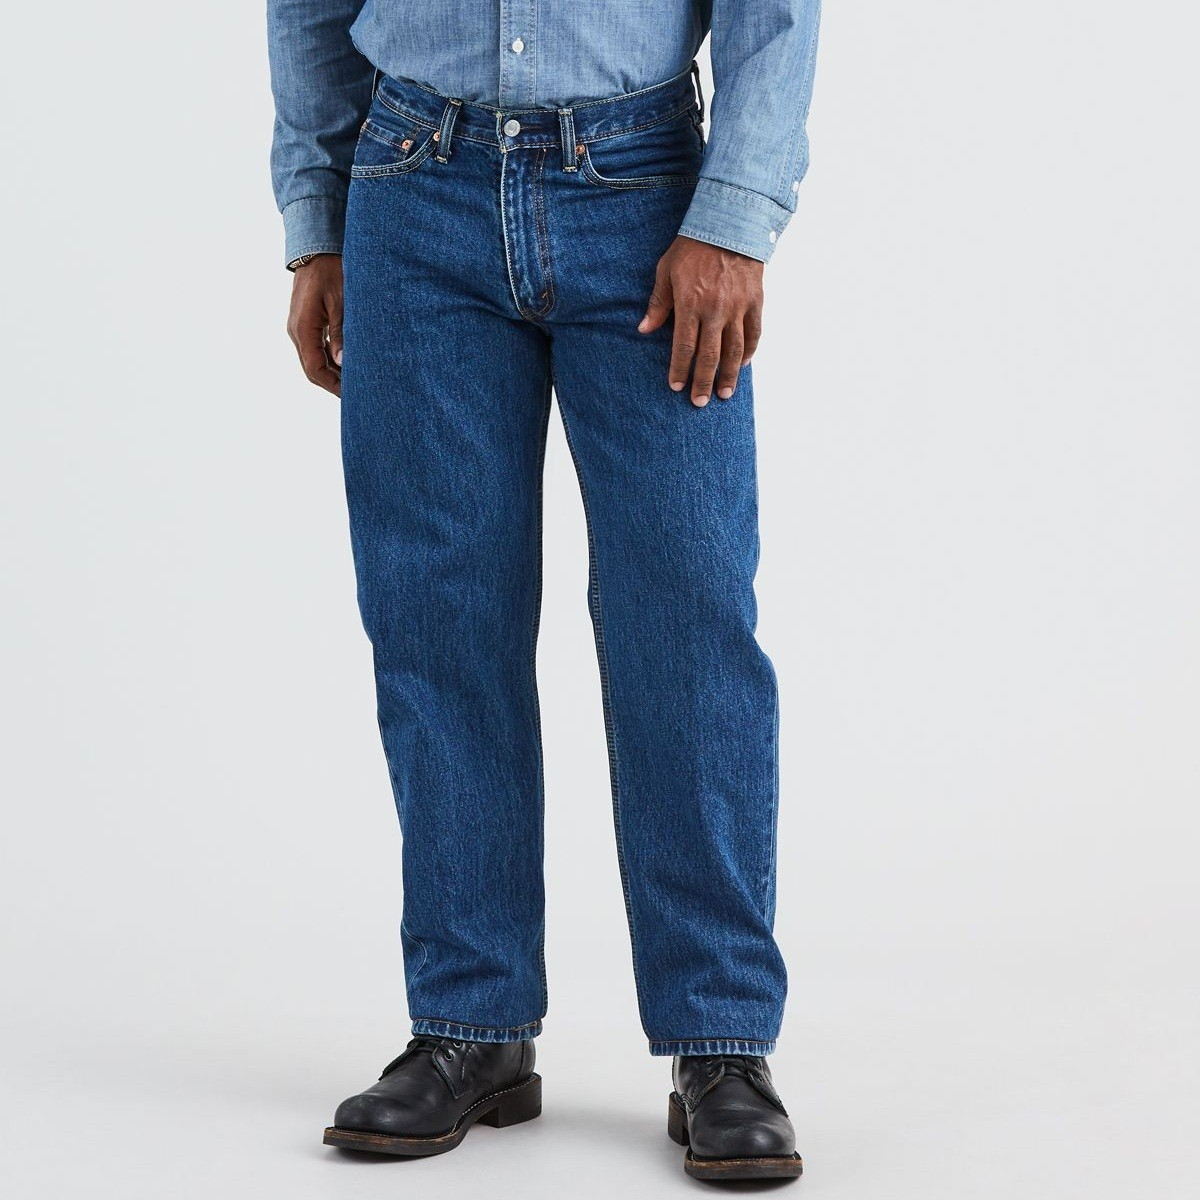 550 Relaxed Fit Jeans 00550-4886 1